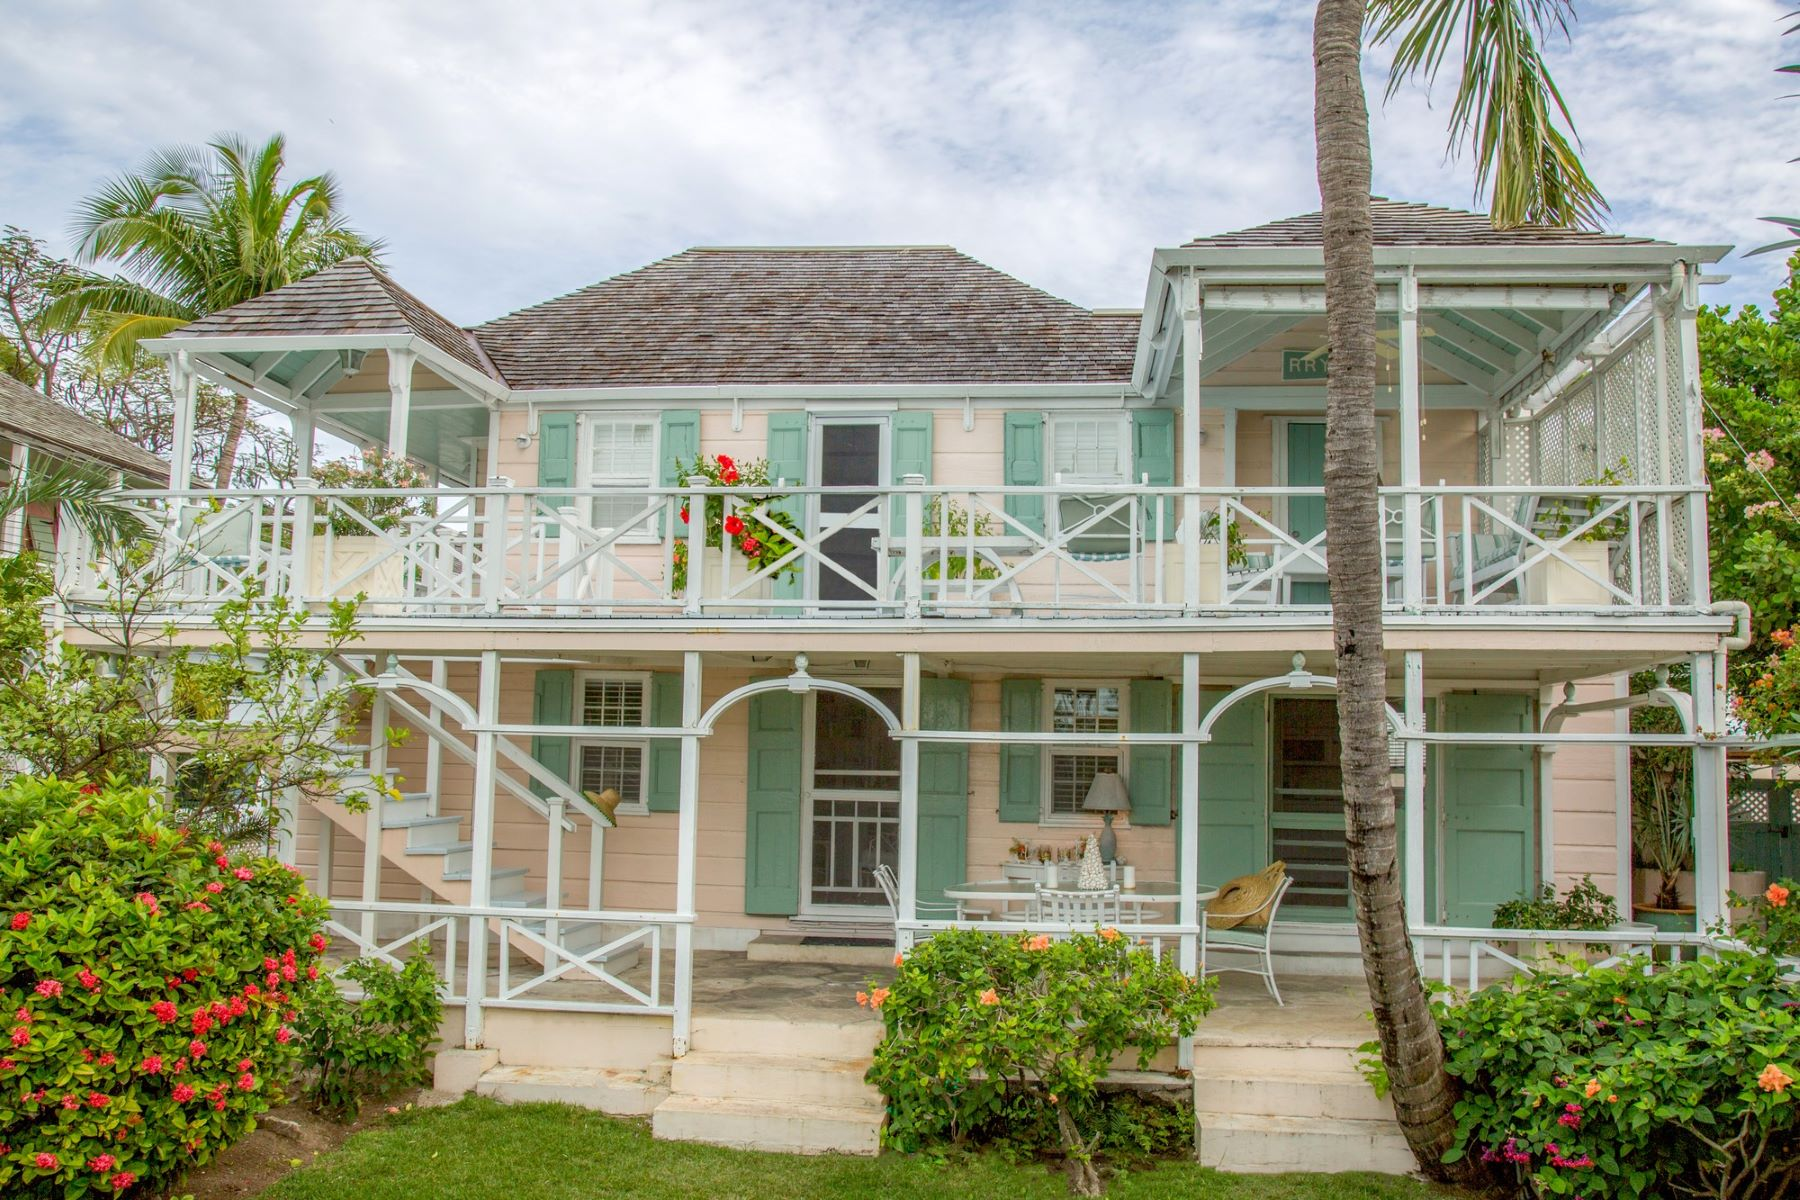 Single Family Home for Sale at Miss Lena's Harbour Island, Eleuthera Bahamas